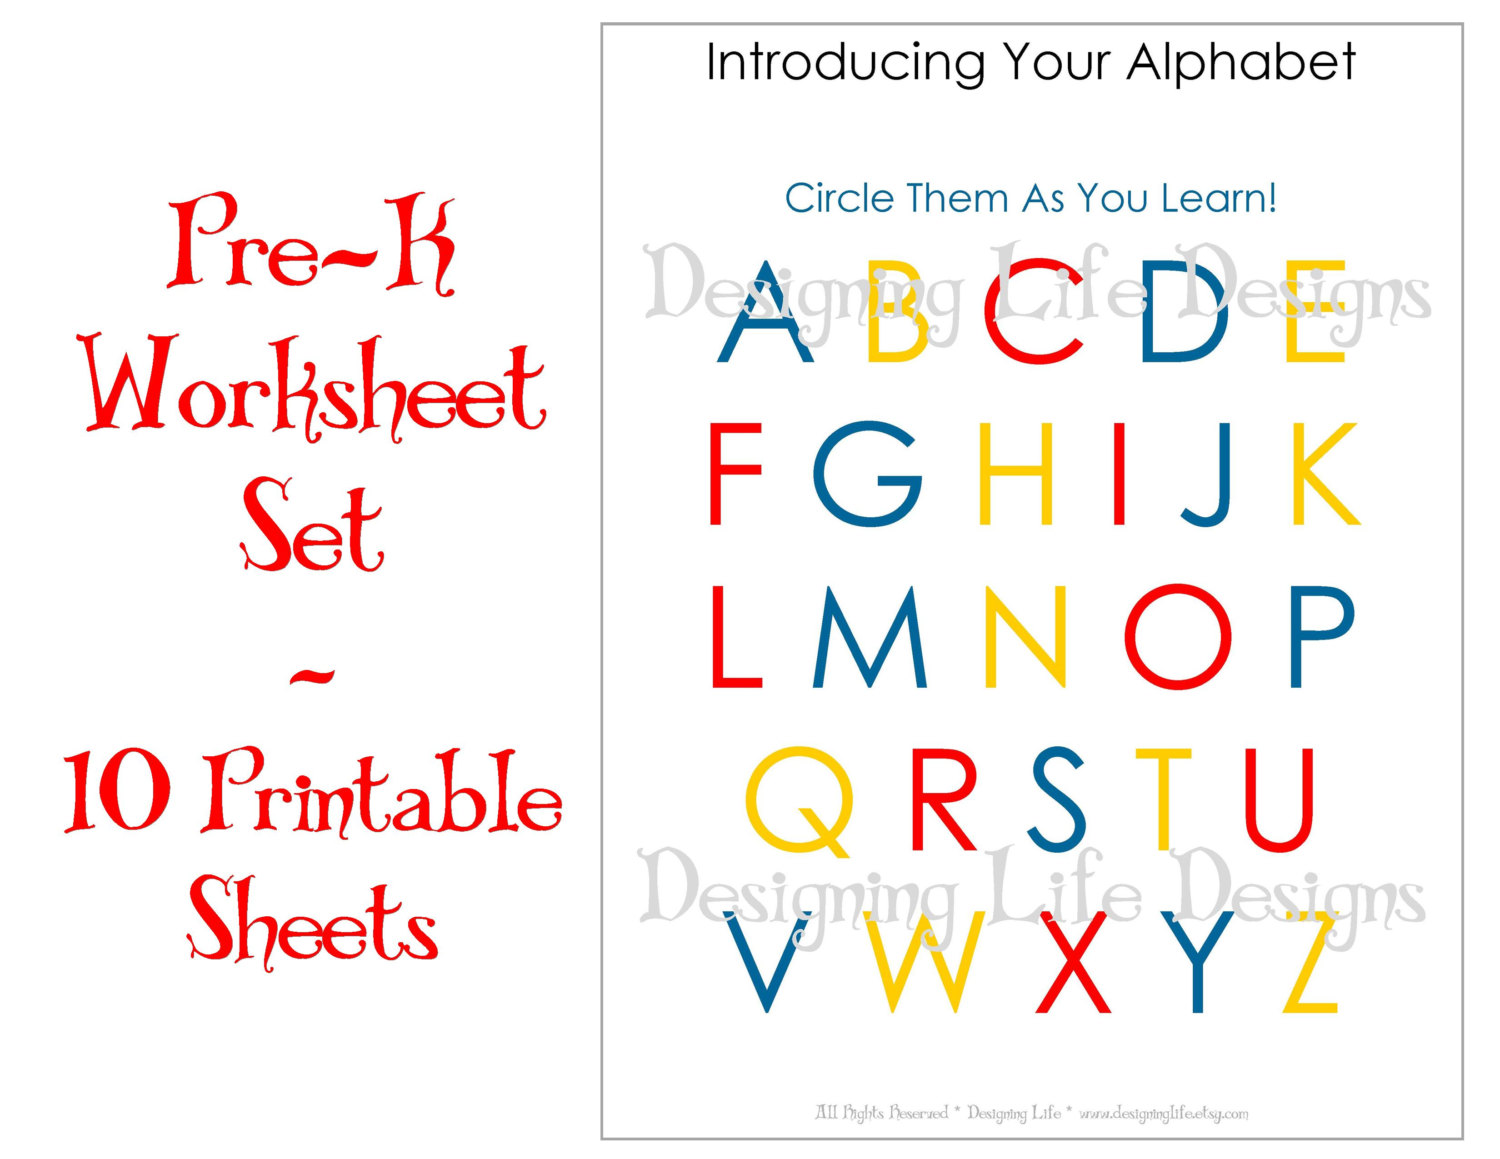 Printables Free Printable Pre Kindergarten Worksheets – Pre-kindergarten Worksheets Free Printables